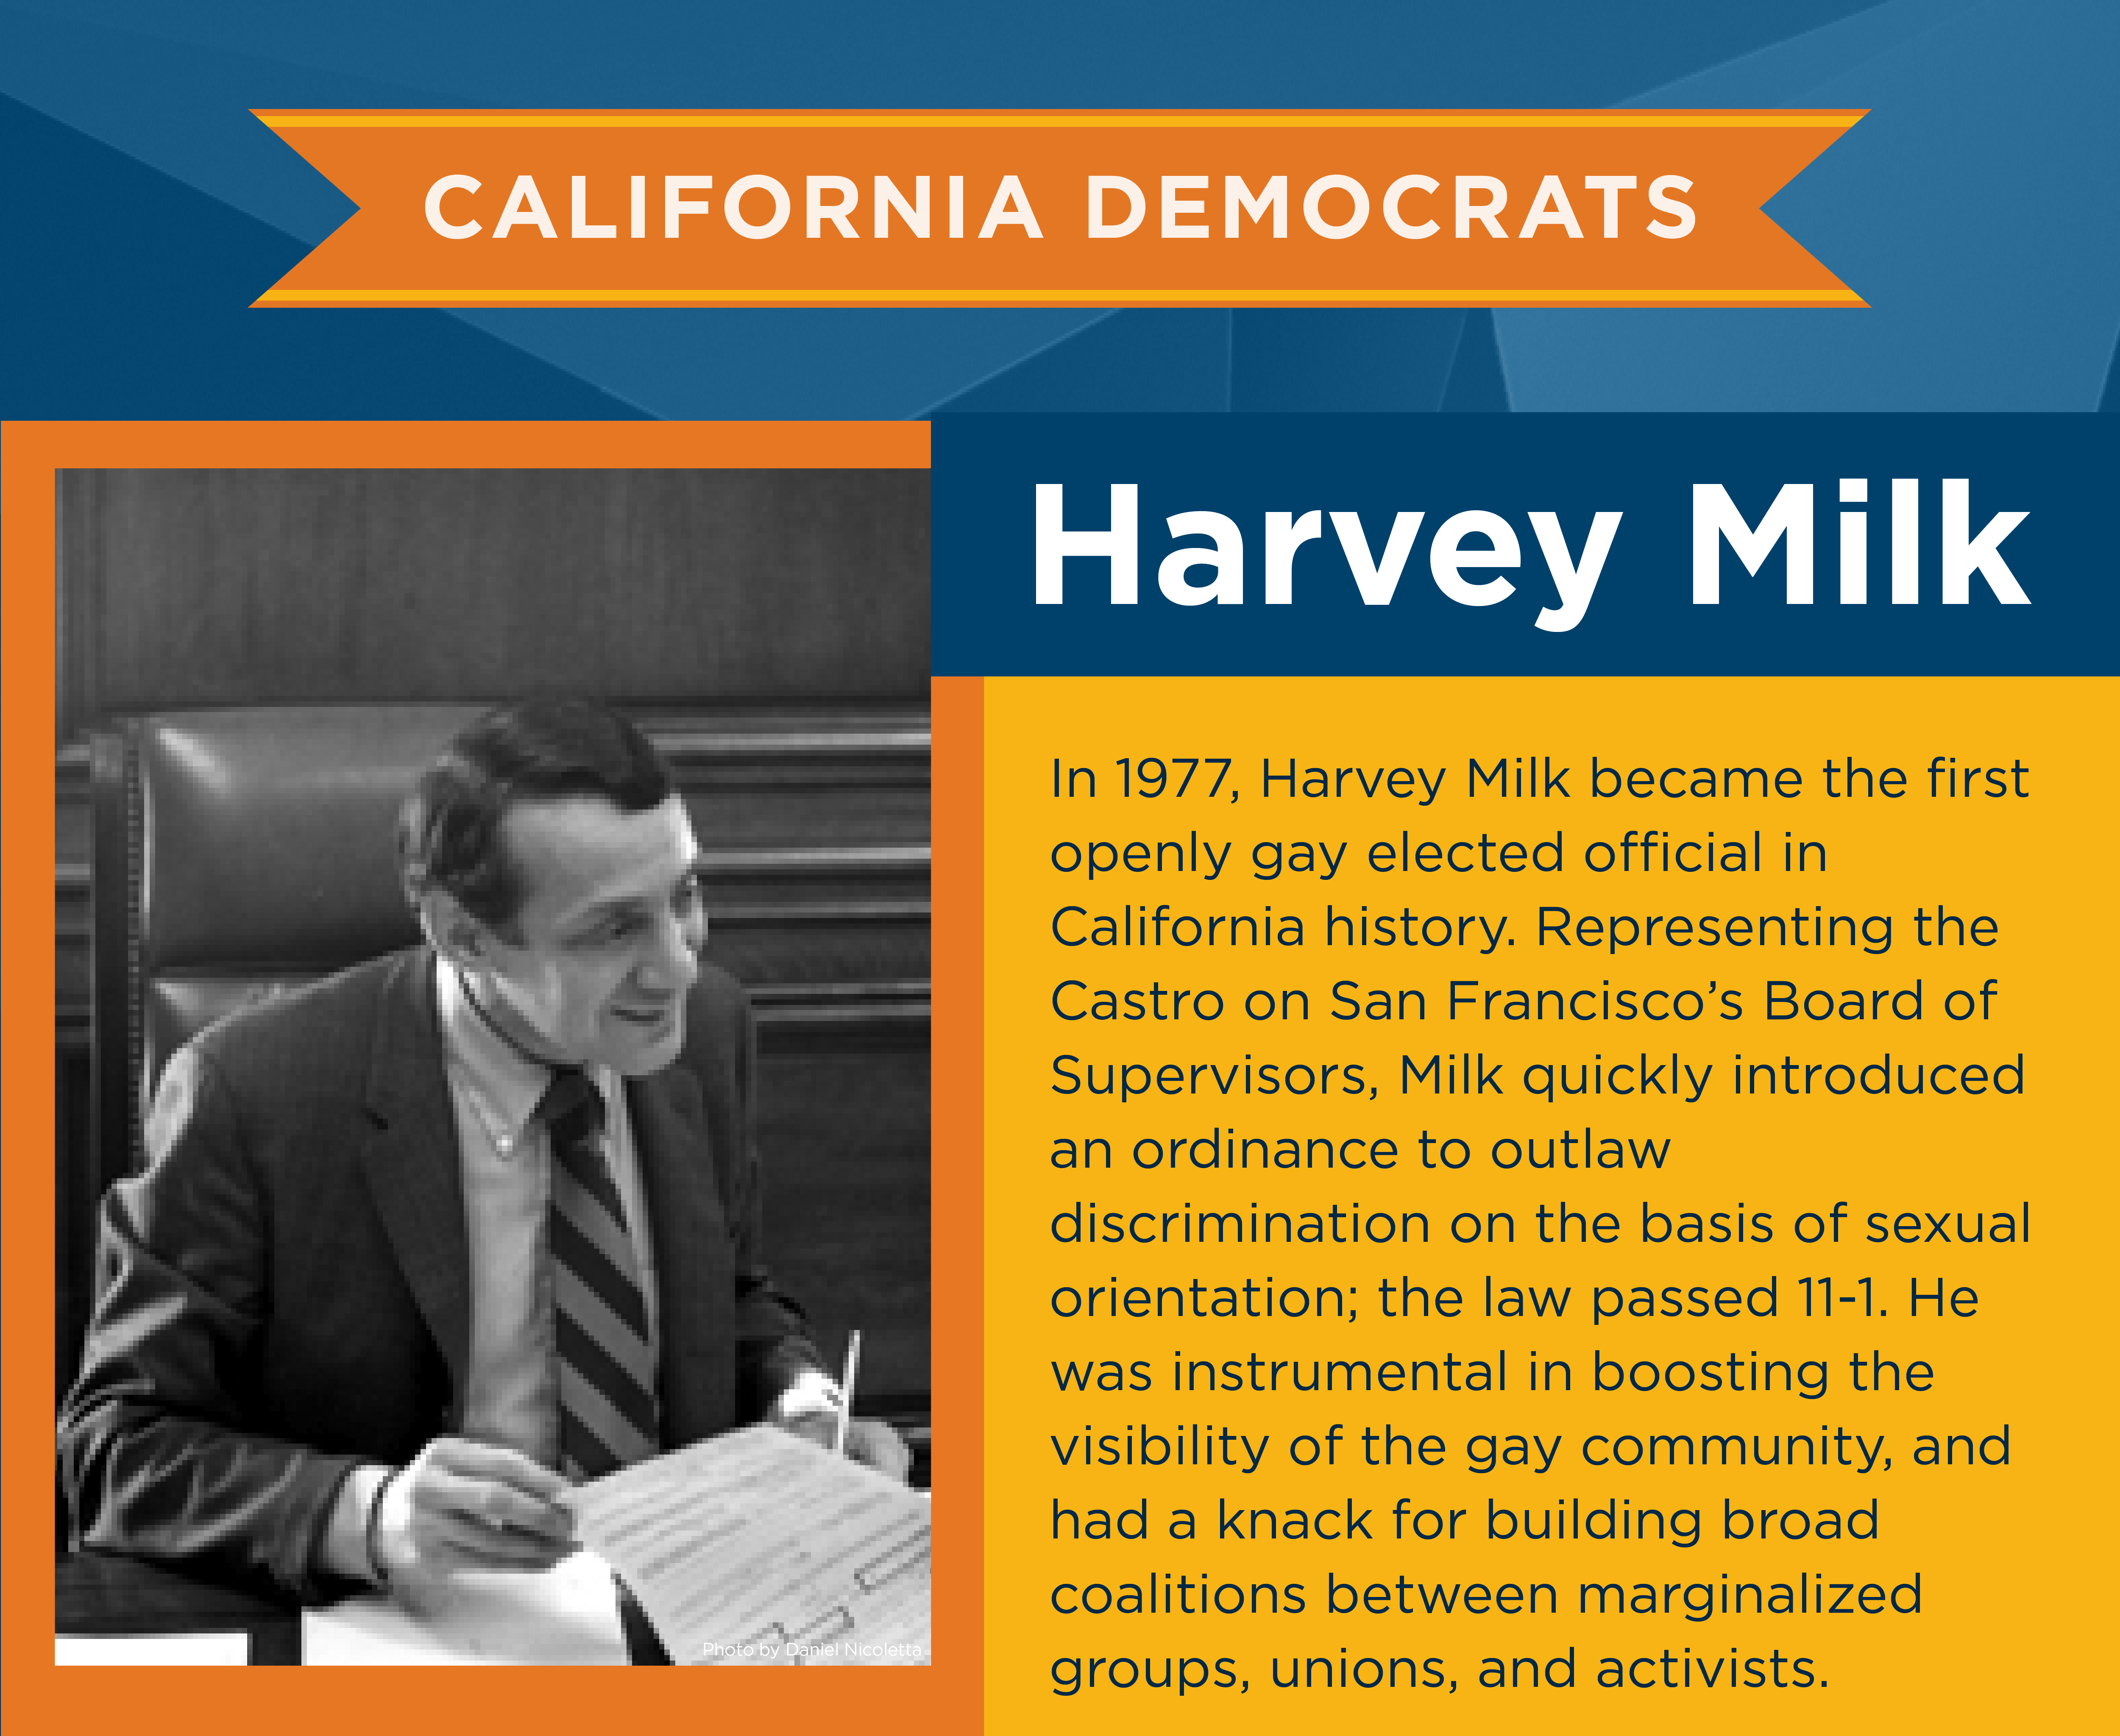 In 1977, Harvey Milk became the first openly gay elected official in California history. Representing the Castro on San Francisco's Board of Supervisors, Milk quickly introduced an ordinance to outlaw discrimination on the basis of sexual orientation; the law passed 11-1. He was instrumental in boosting the visibility of the gay community, and had a knack for building broad coalitions between marginalized groups, unions, and activists.